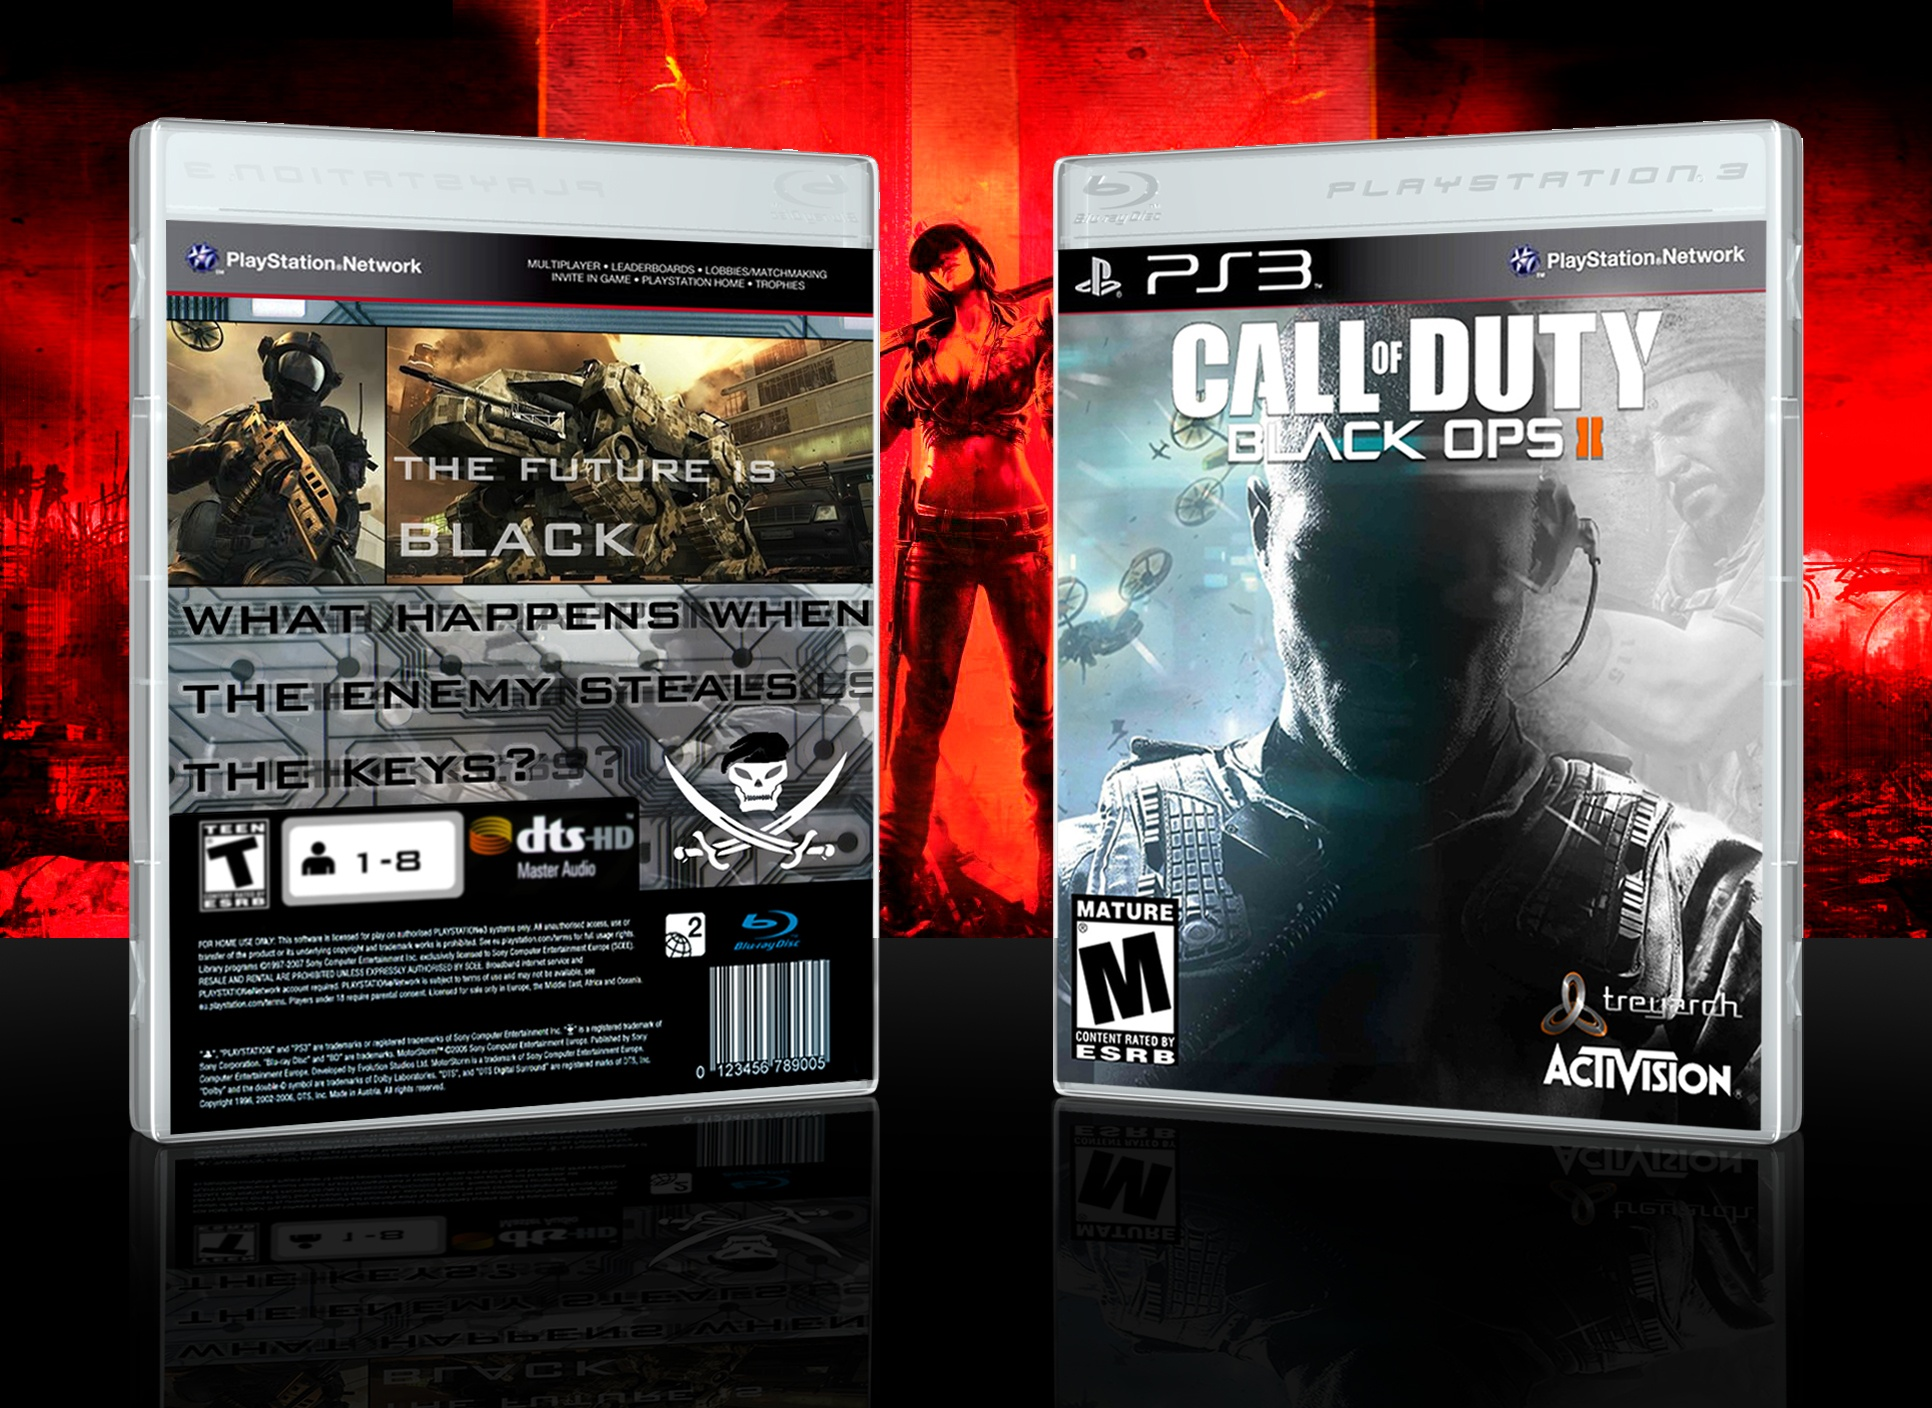 Call Of Duty Black Ops Ii Playstation 3 Box Art Cover By Cazecoverzz